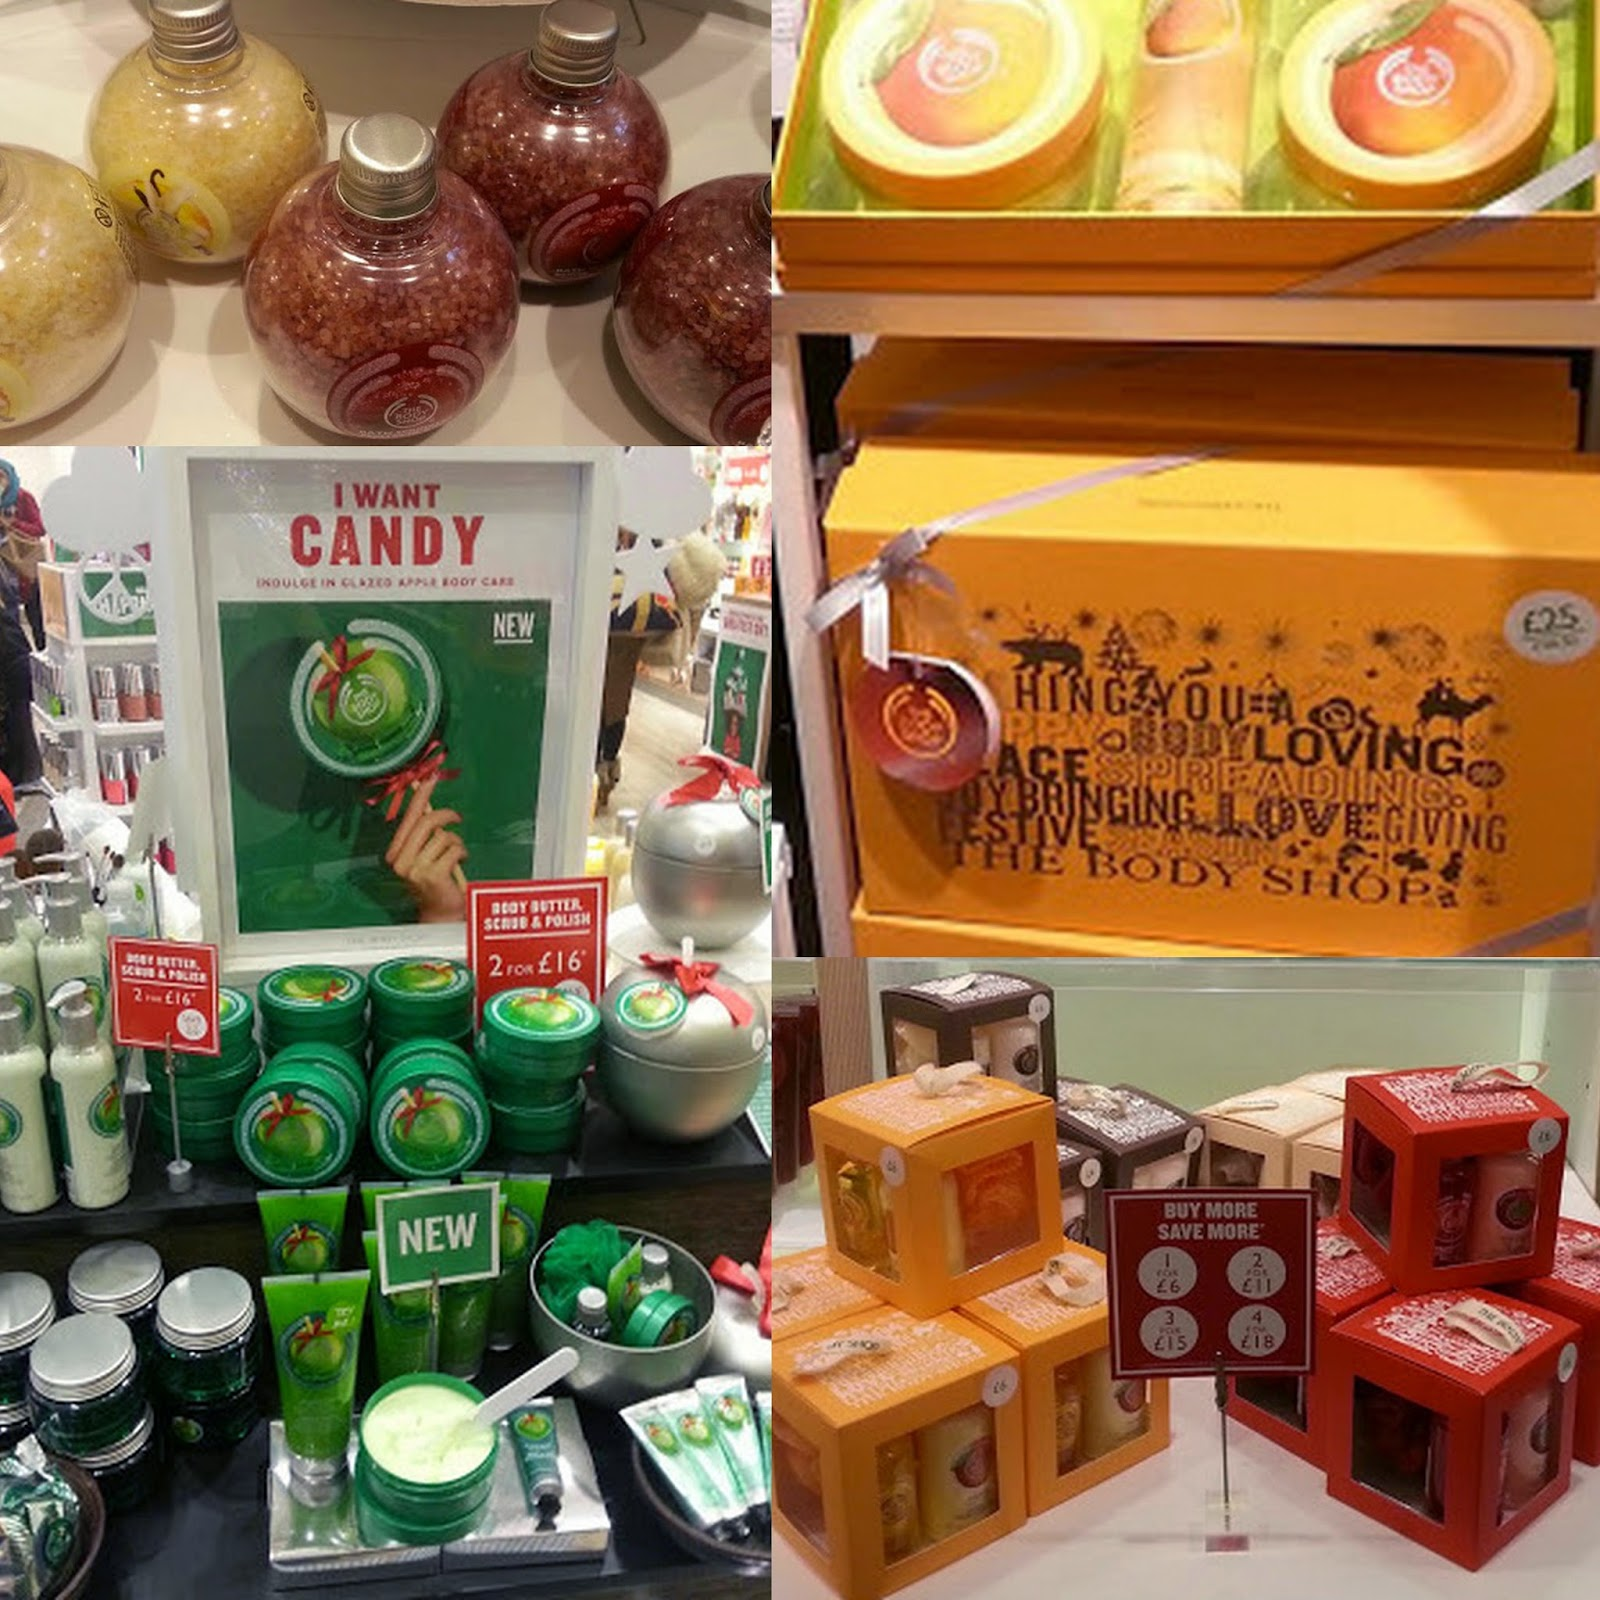 Gifts for her this Christmas from The Body Shop